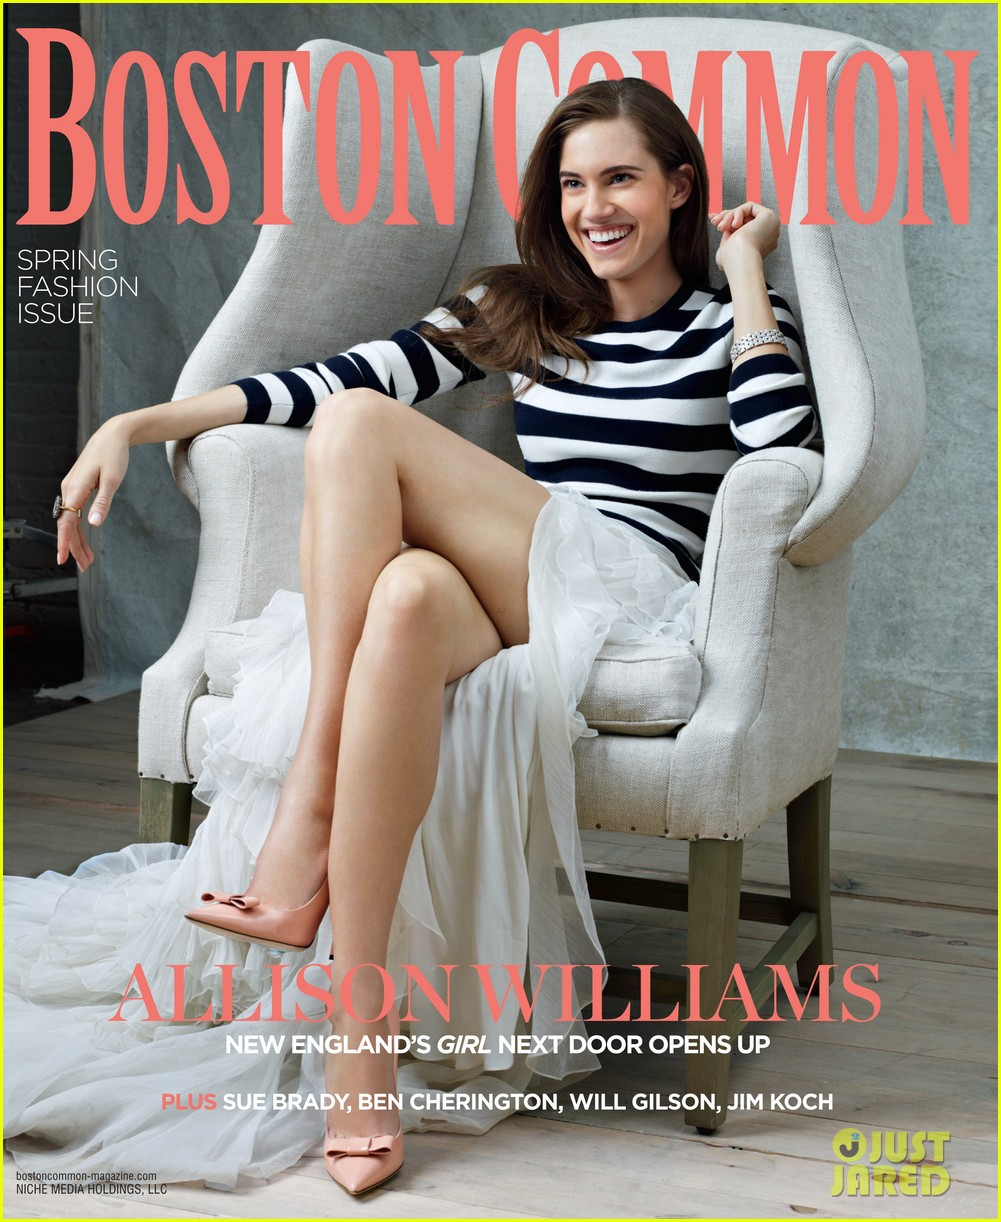 allison-williams-covers-boston-common-01